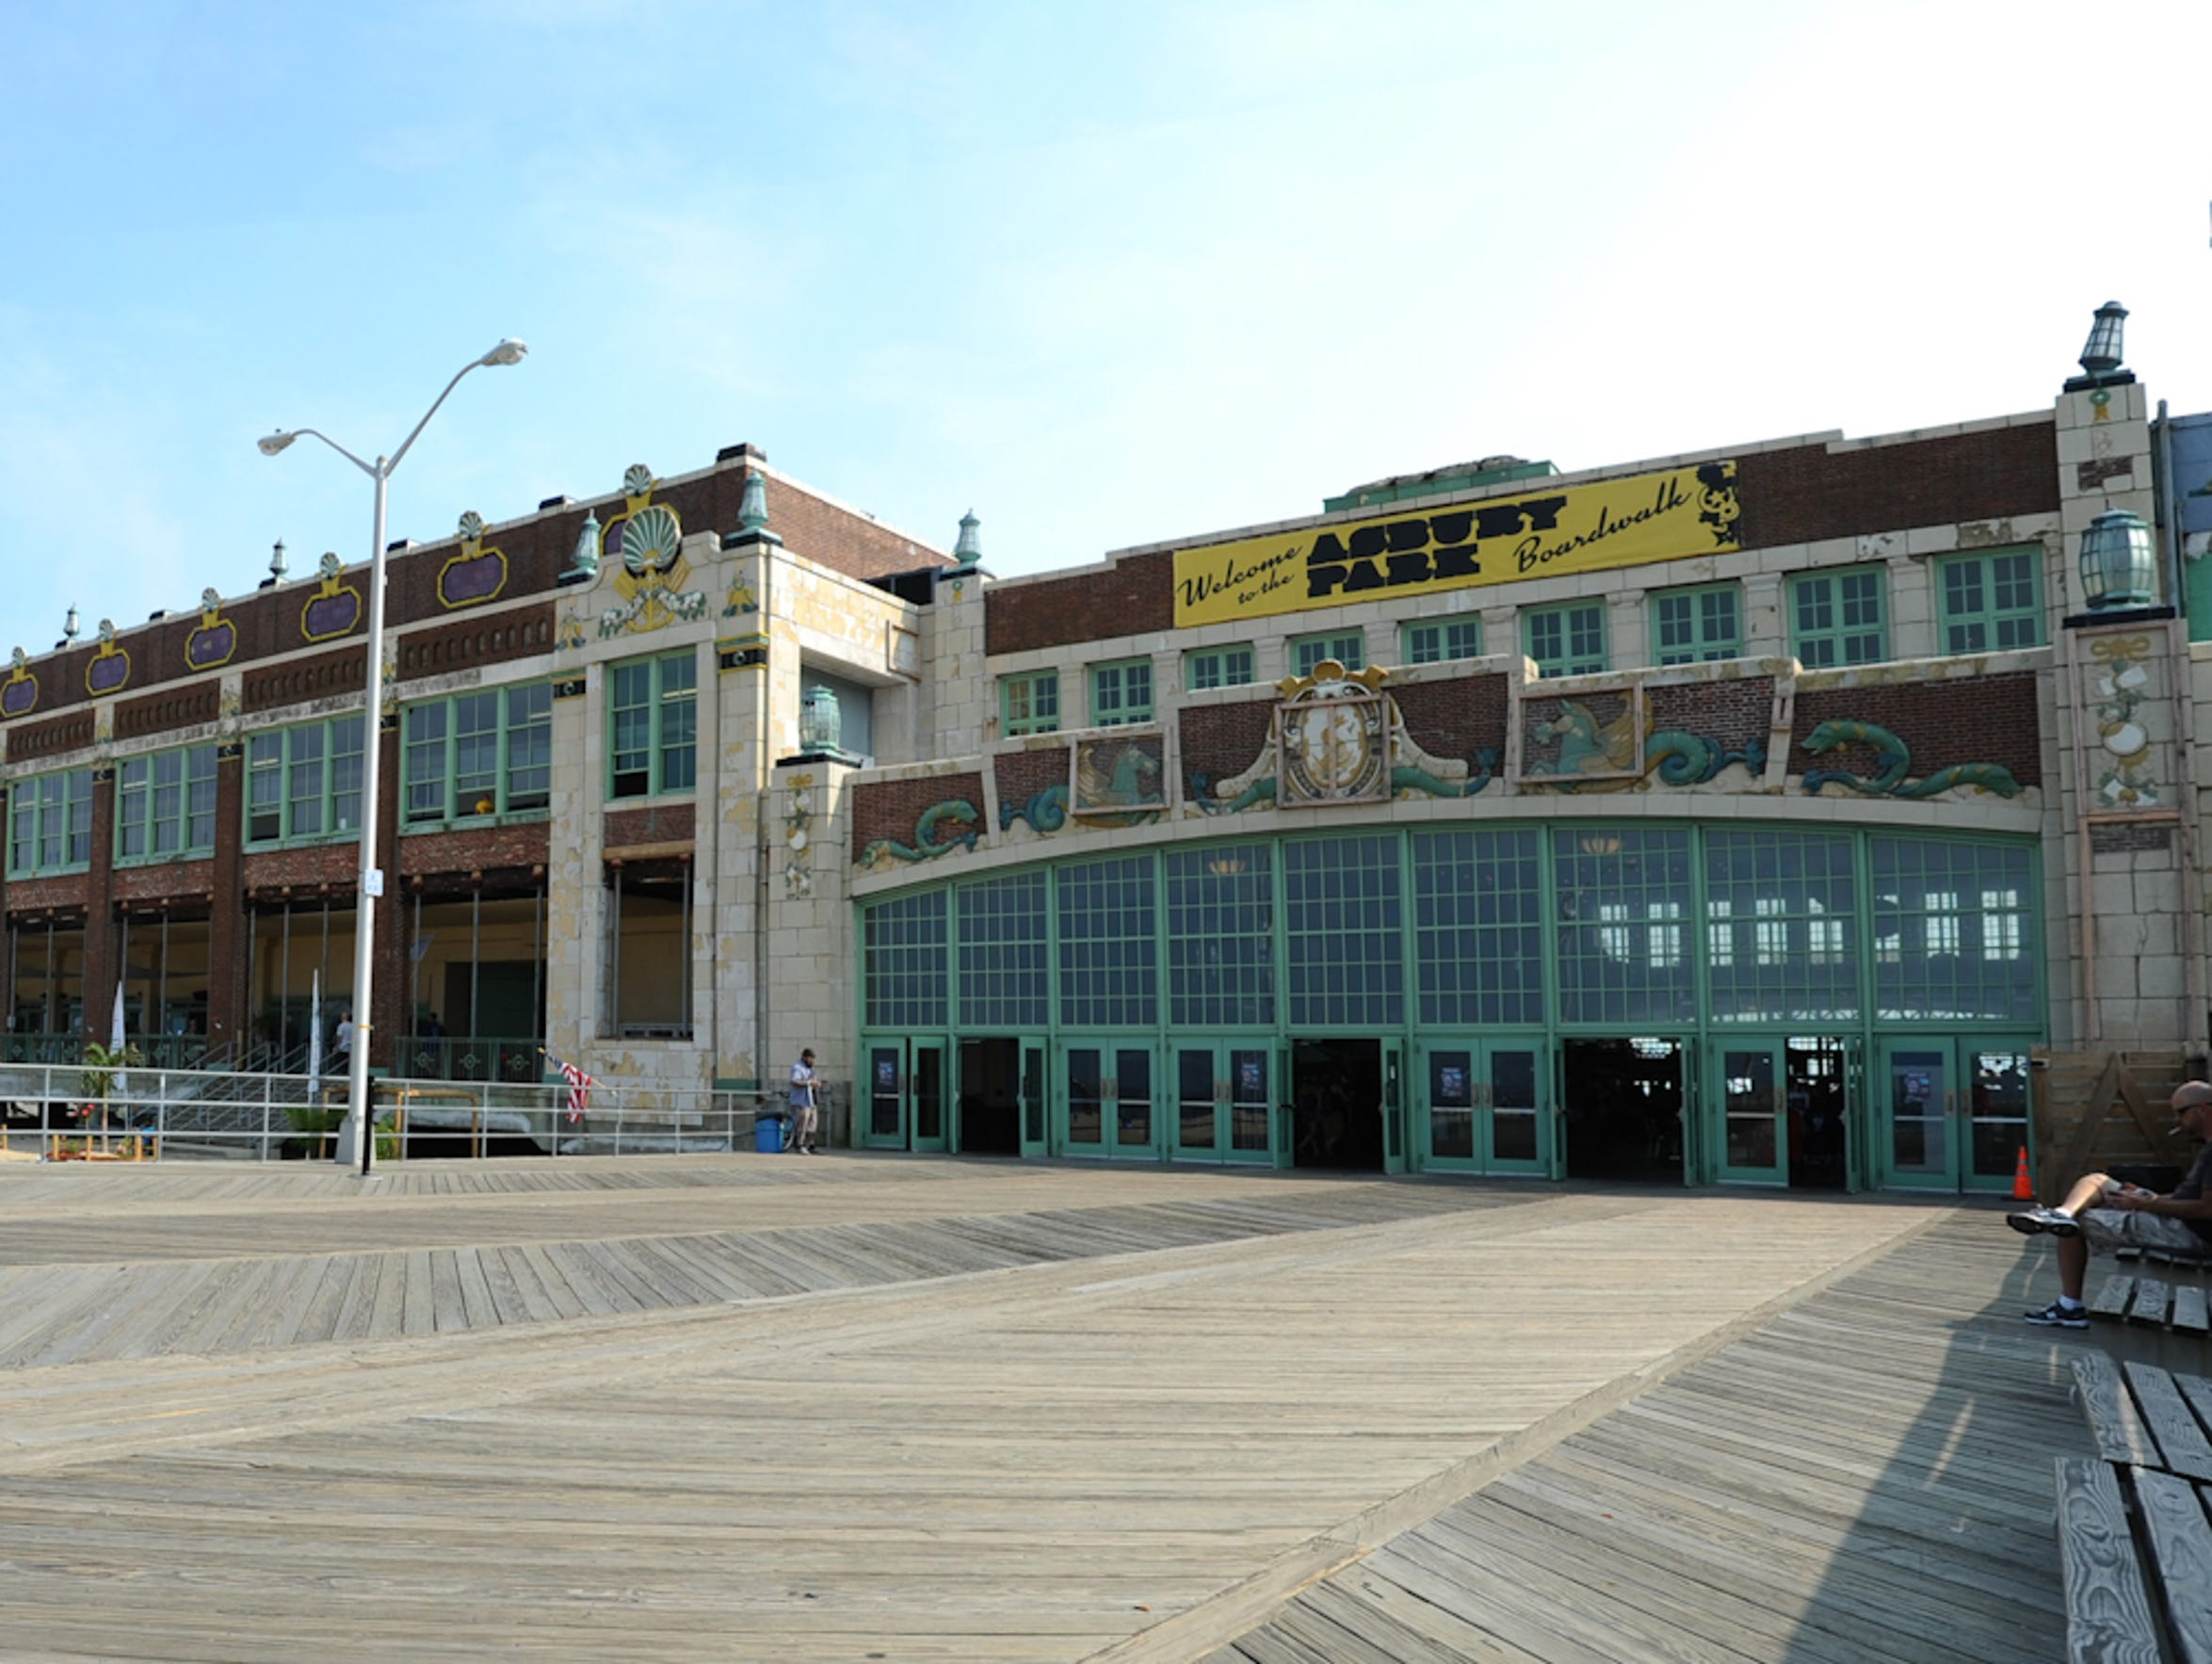 Convention Hall on the Asbury Park boardwalk.